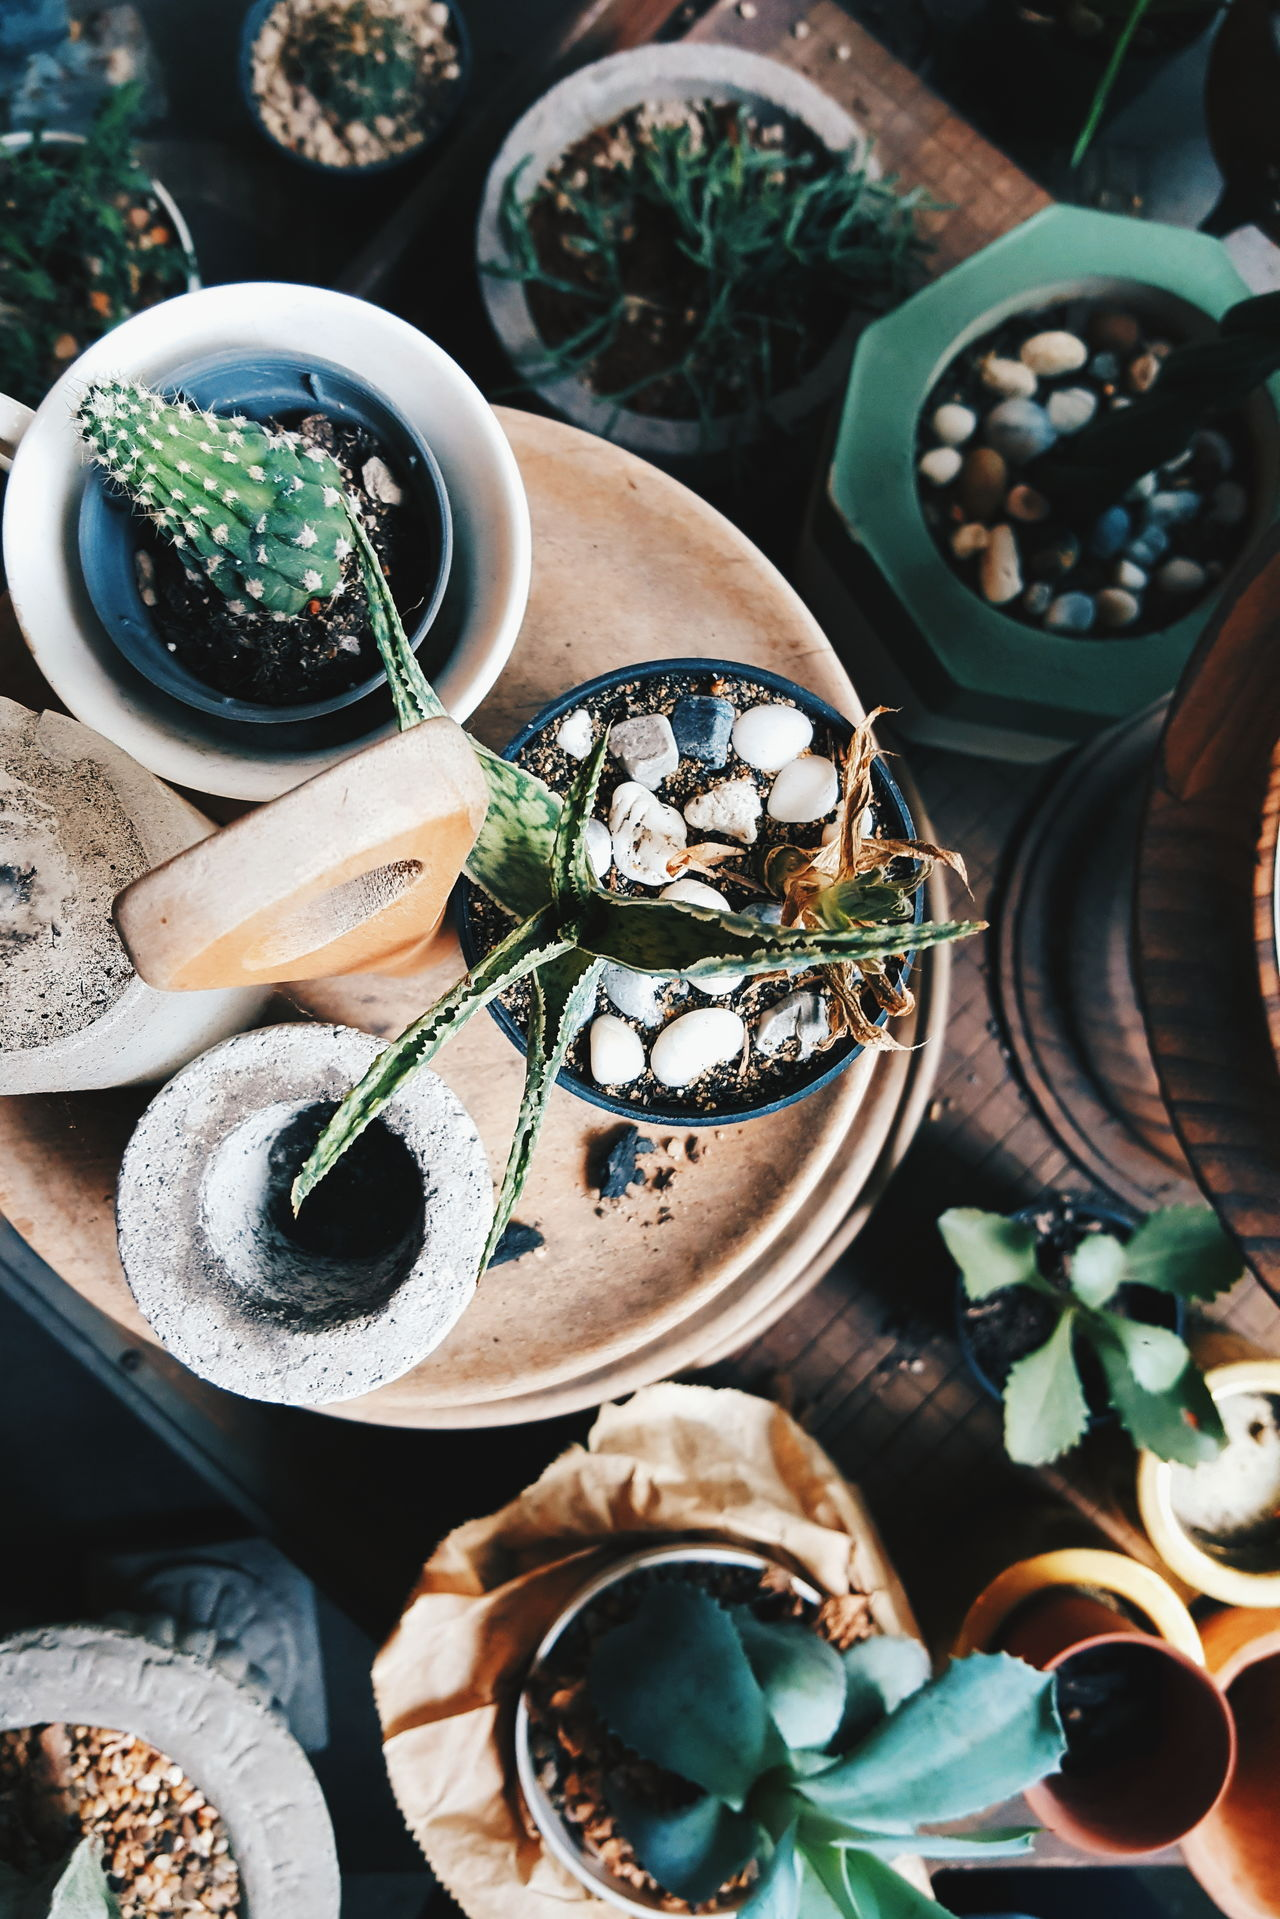 Christmas Food Cultures No People Indoors  Mood Hipster Plants Pots Garden Bokeh Cool Top Flat Lay Vase VSCO